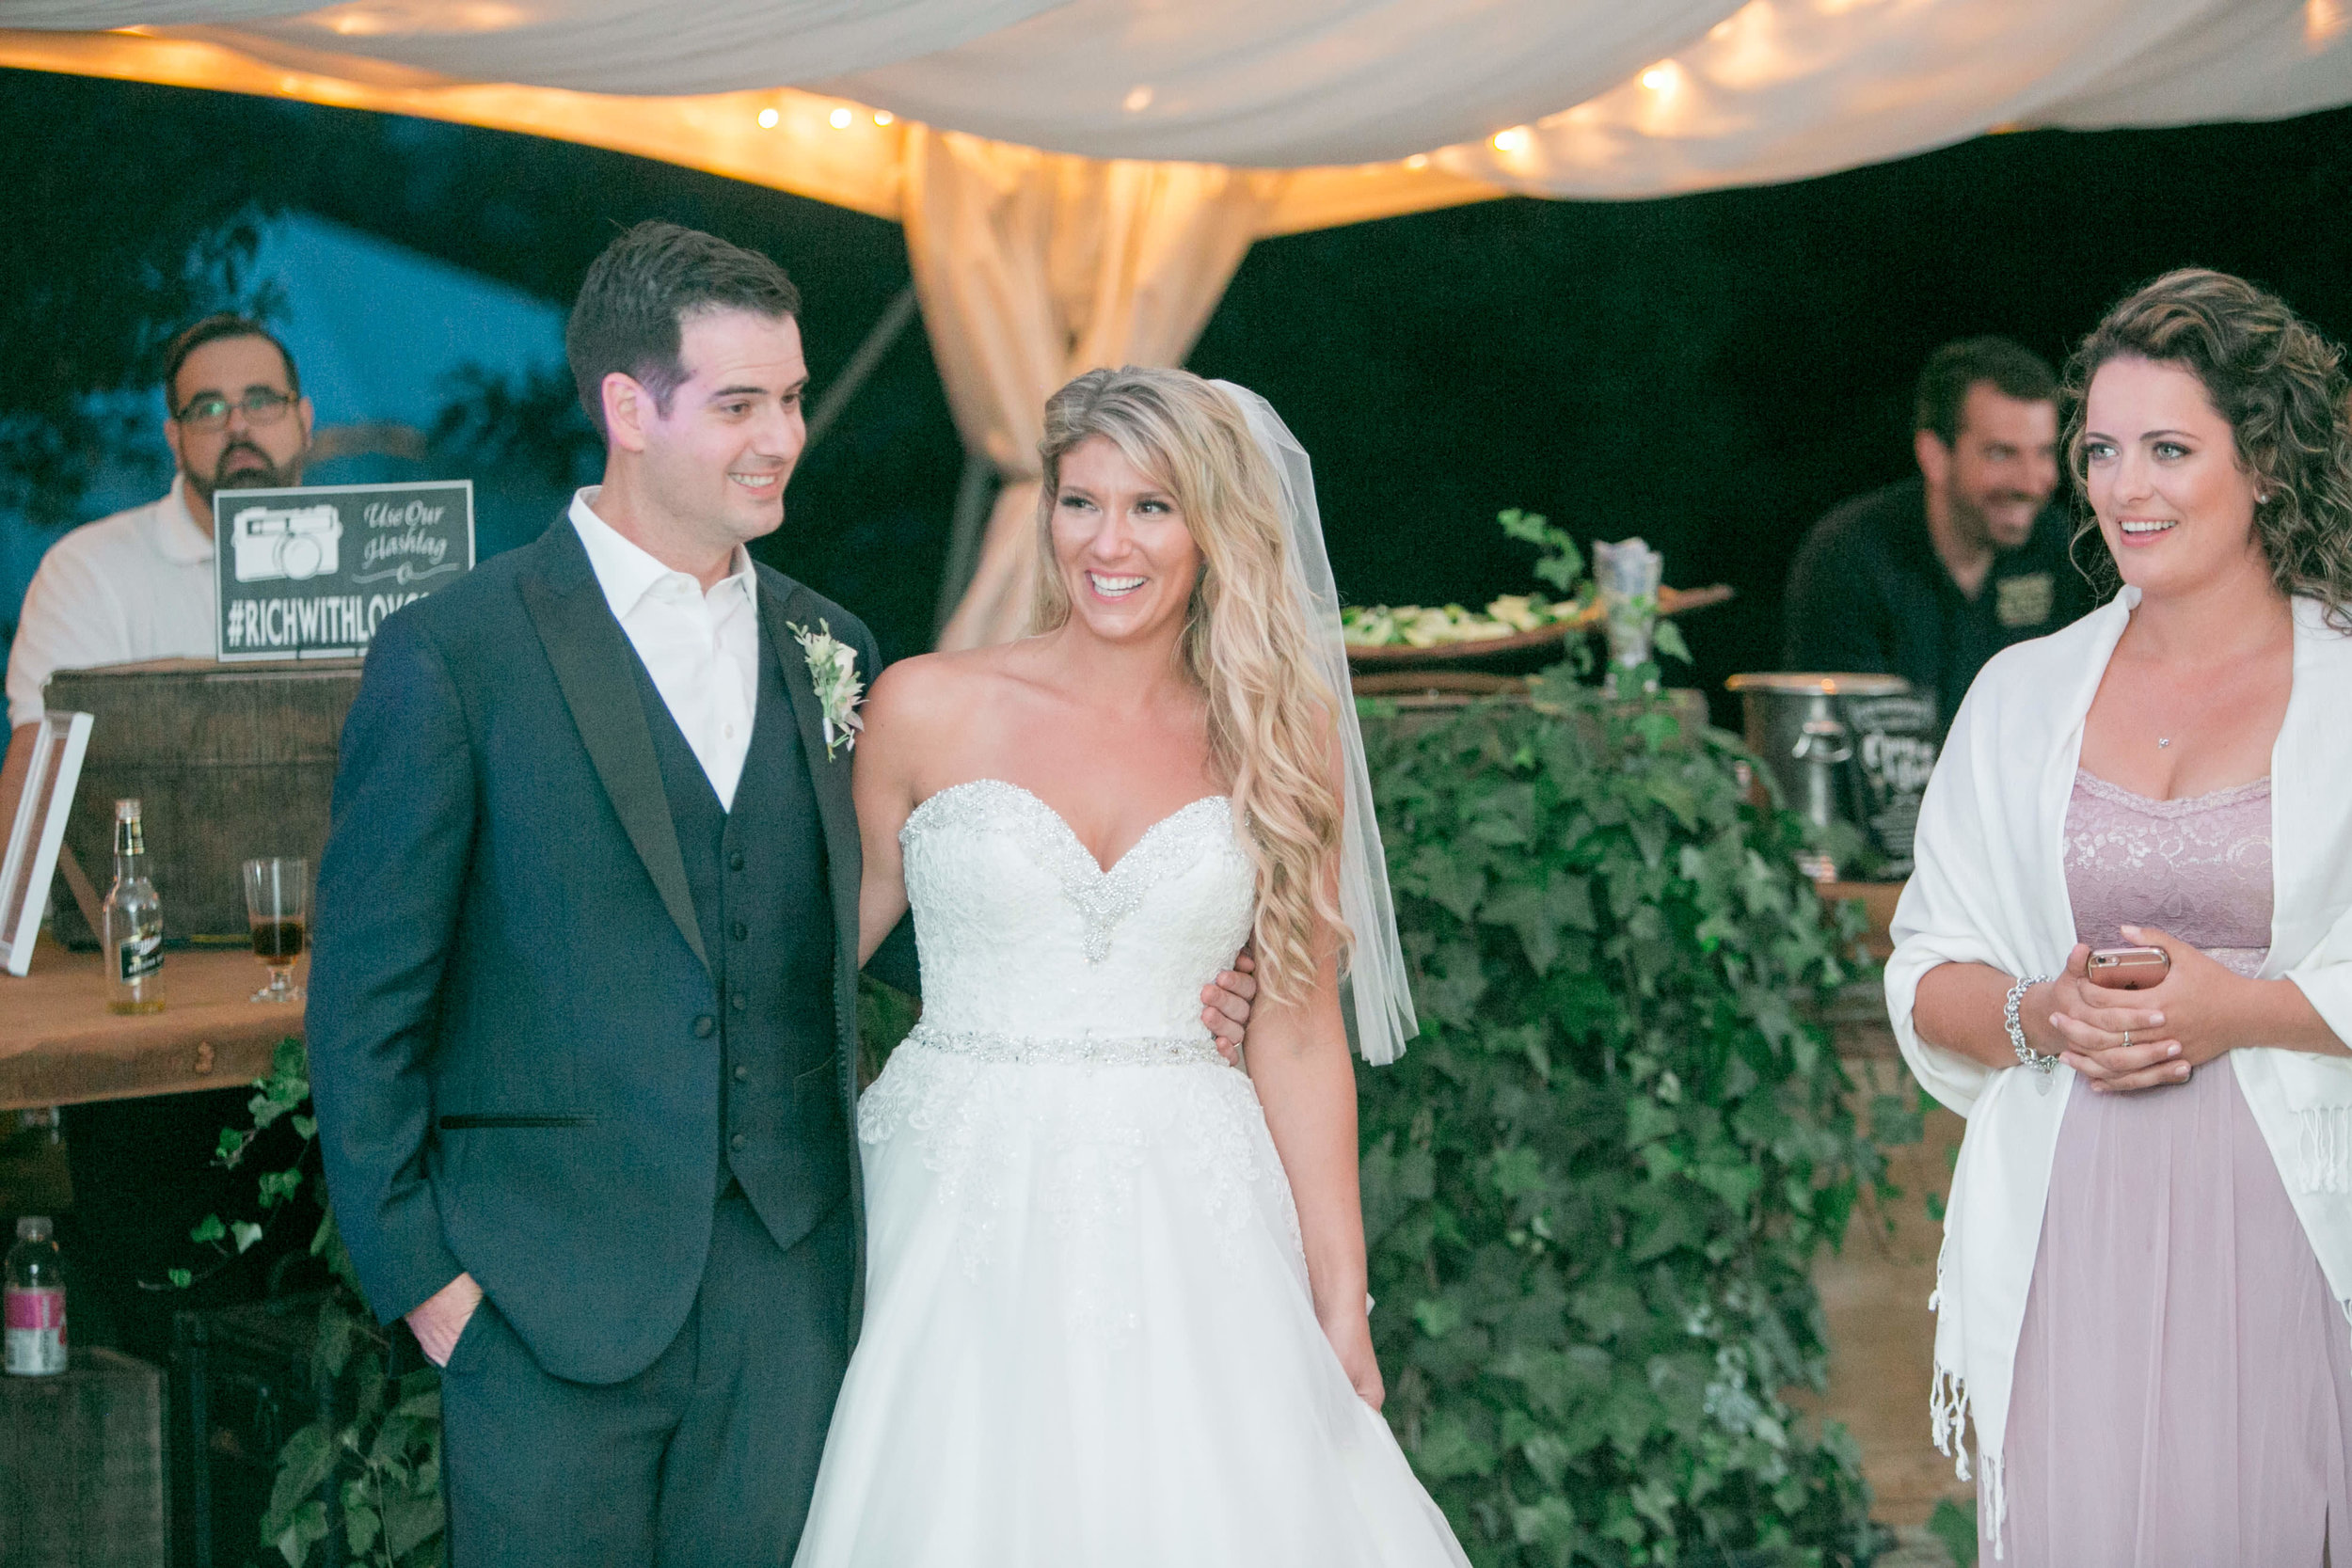 Ashley___Zac___Daniel_Ricci_Weddings___High_Res._Finals_608.jpg